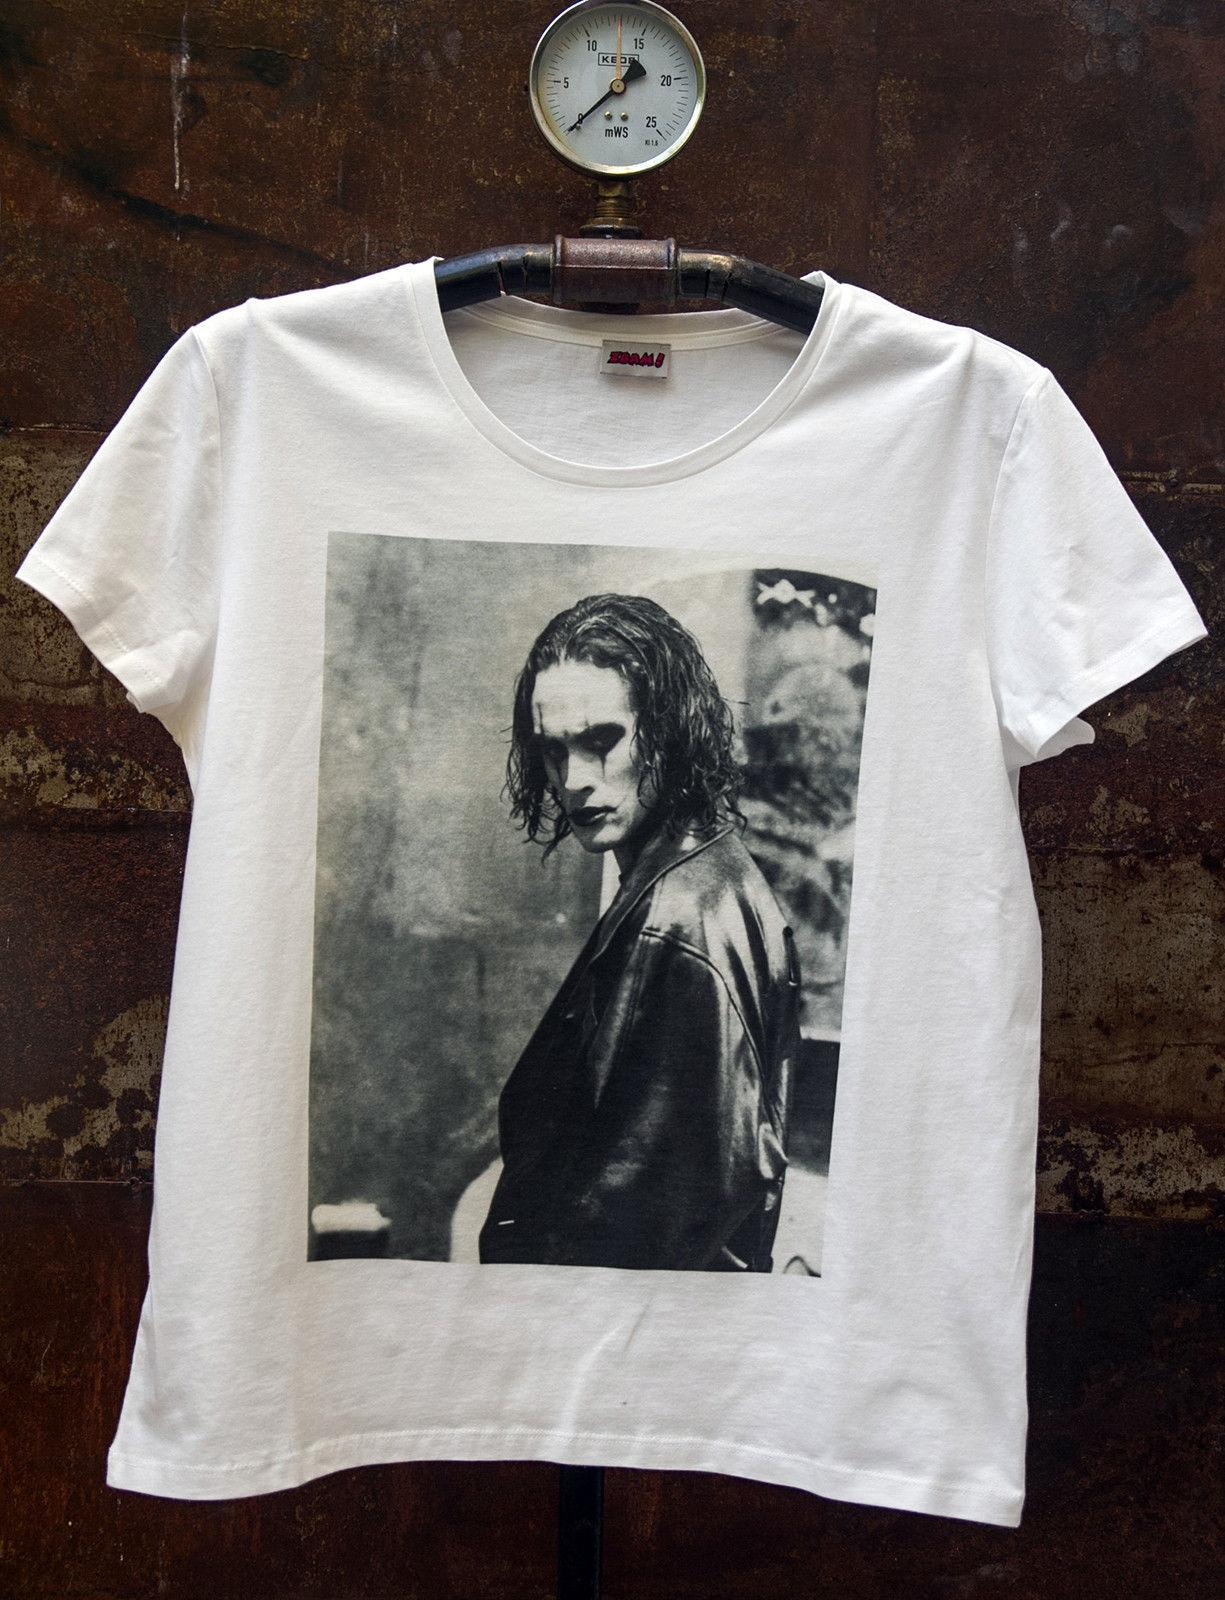 The Crow Brandon Lee Soundtrack Cotton Tees Sz S-3XL White Men/'s T-shirts